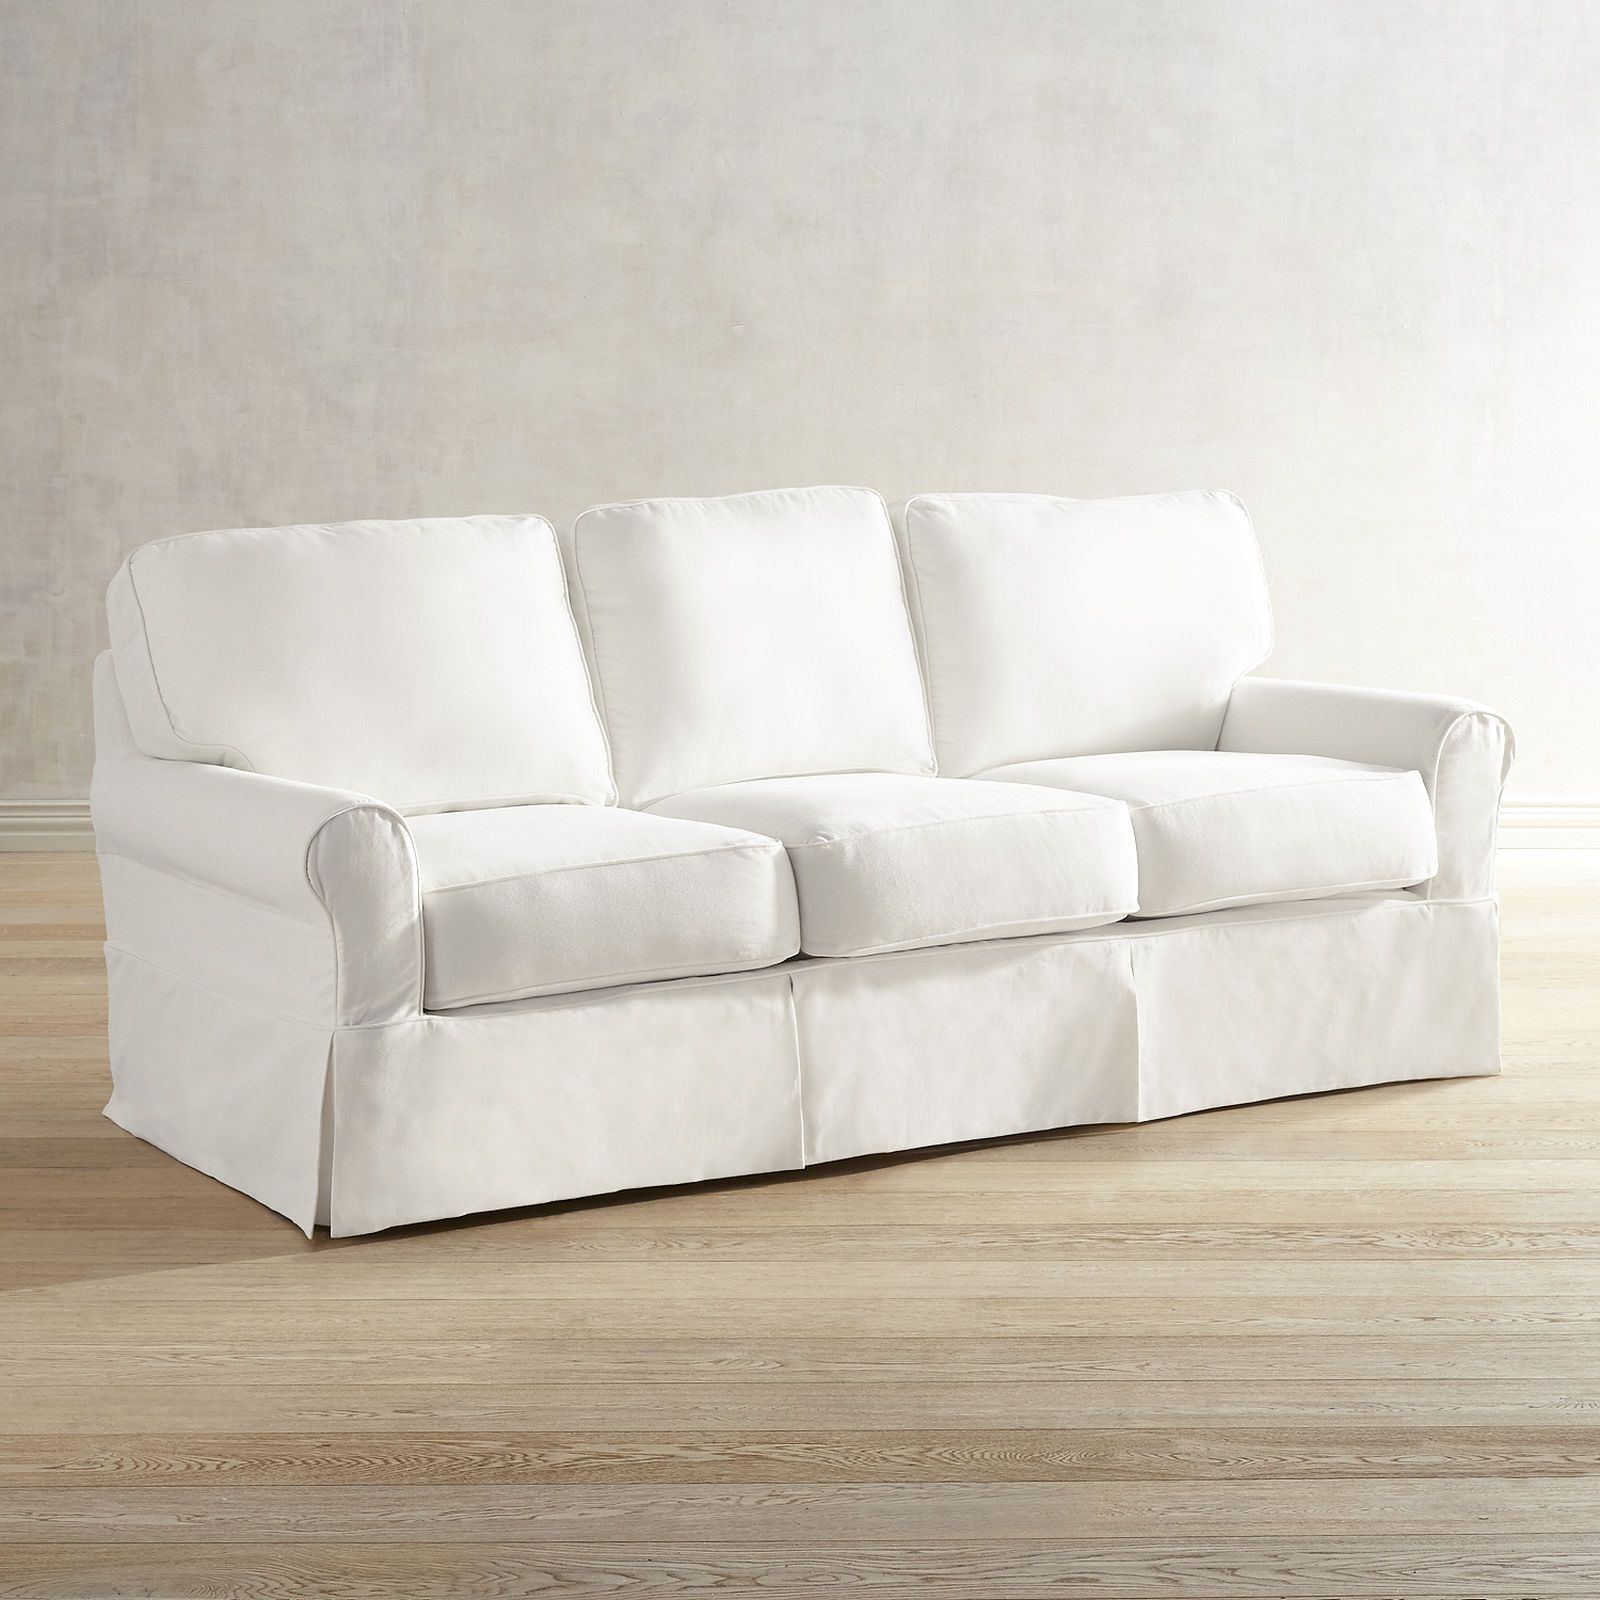 Lia Pierformance™ White Slipcovered Sofa | F U R N I T U R E Pertaining To London Optical Reversible Sofa Chaise Sectionals (Image 12 of 25)